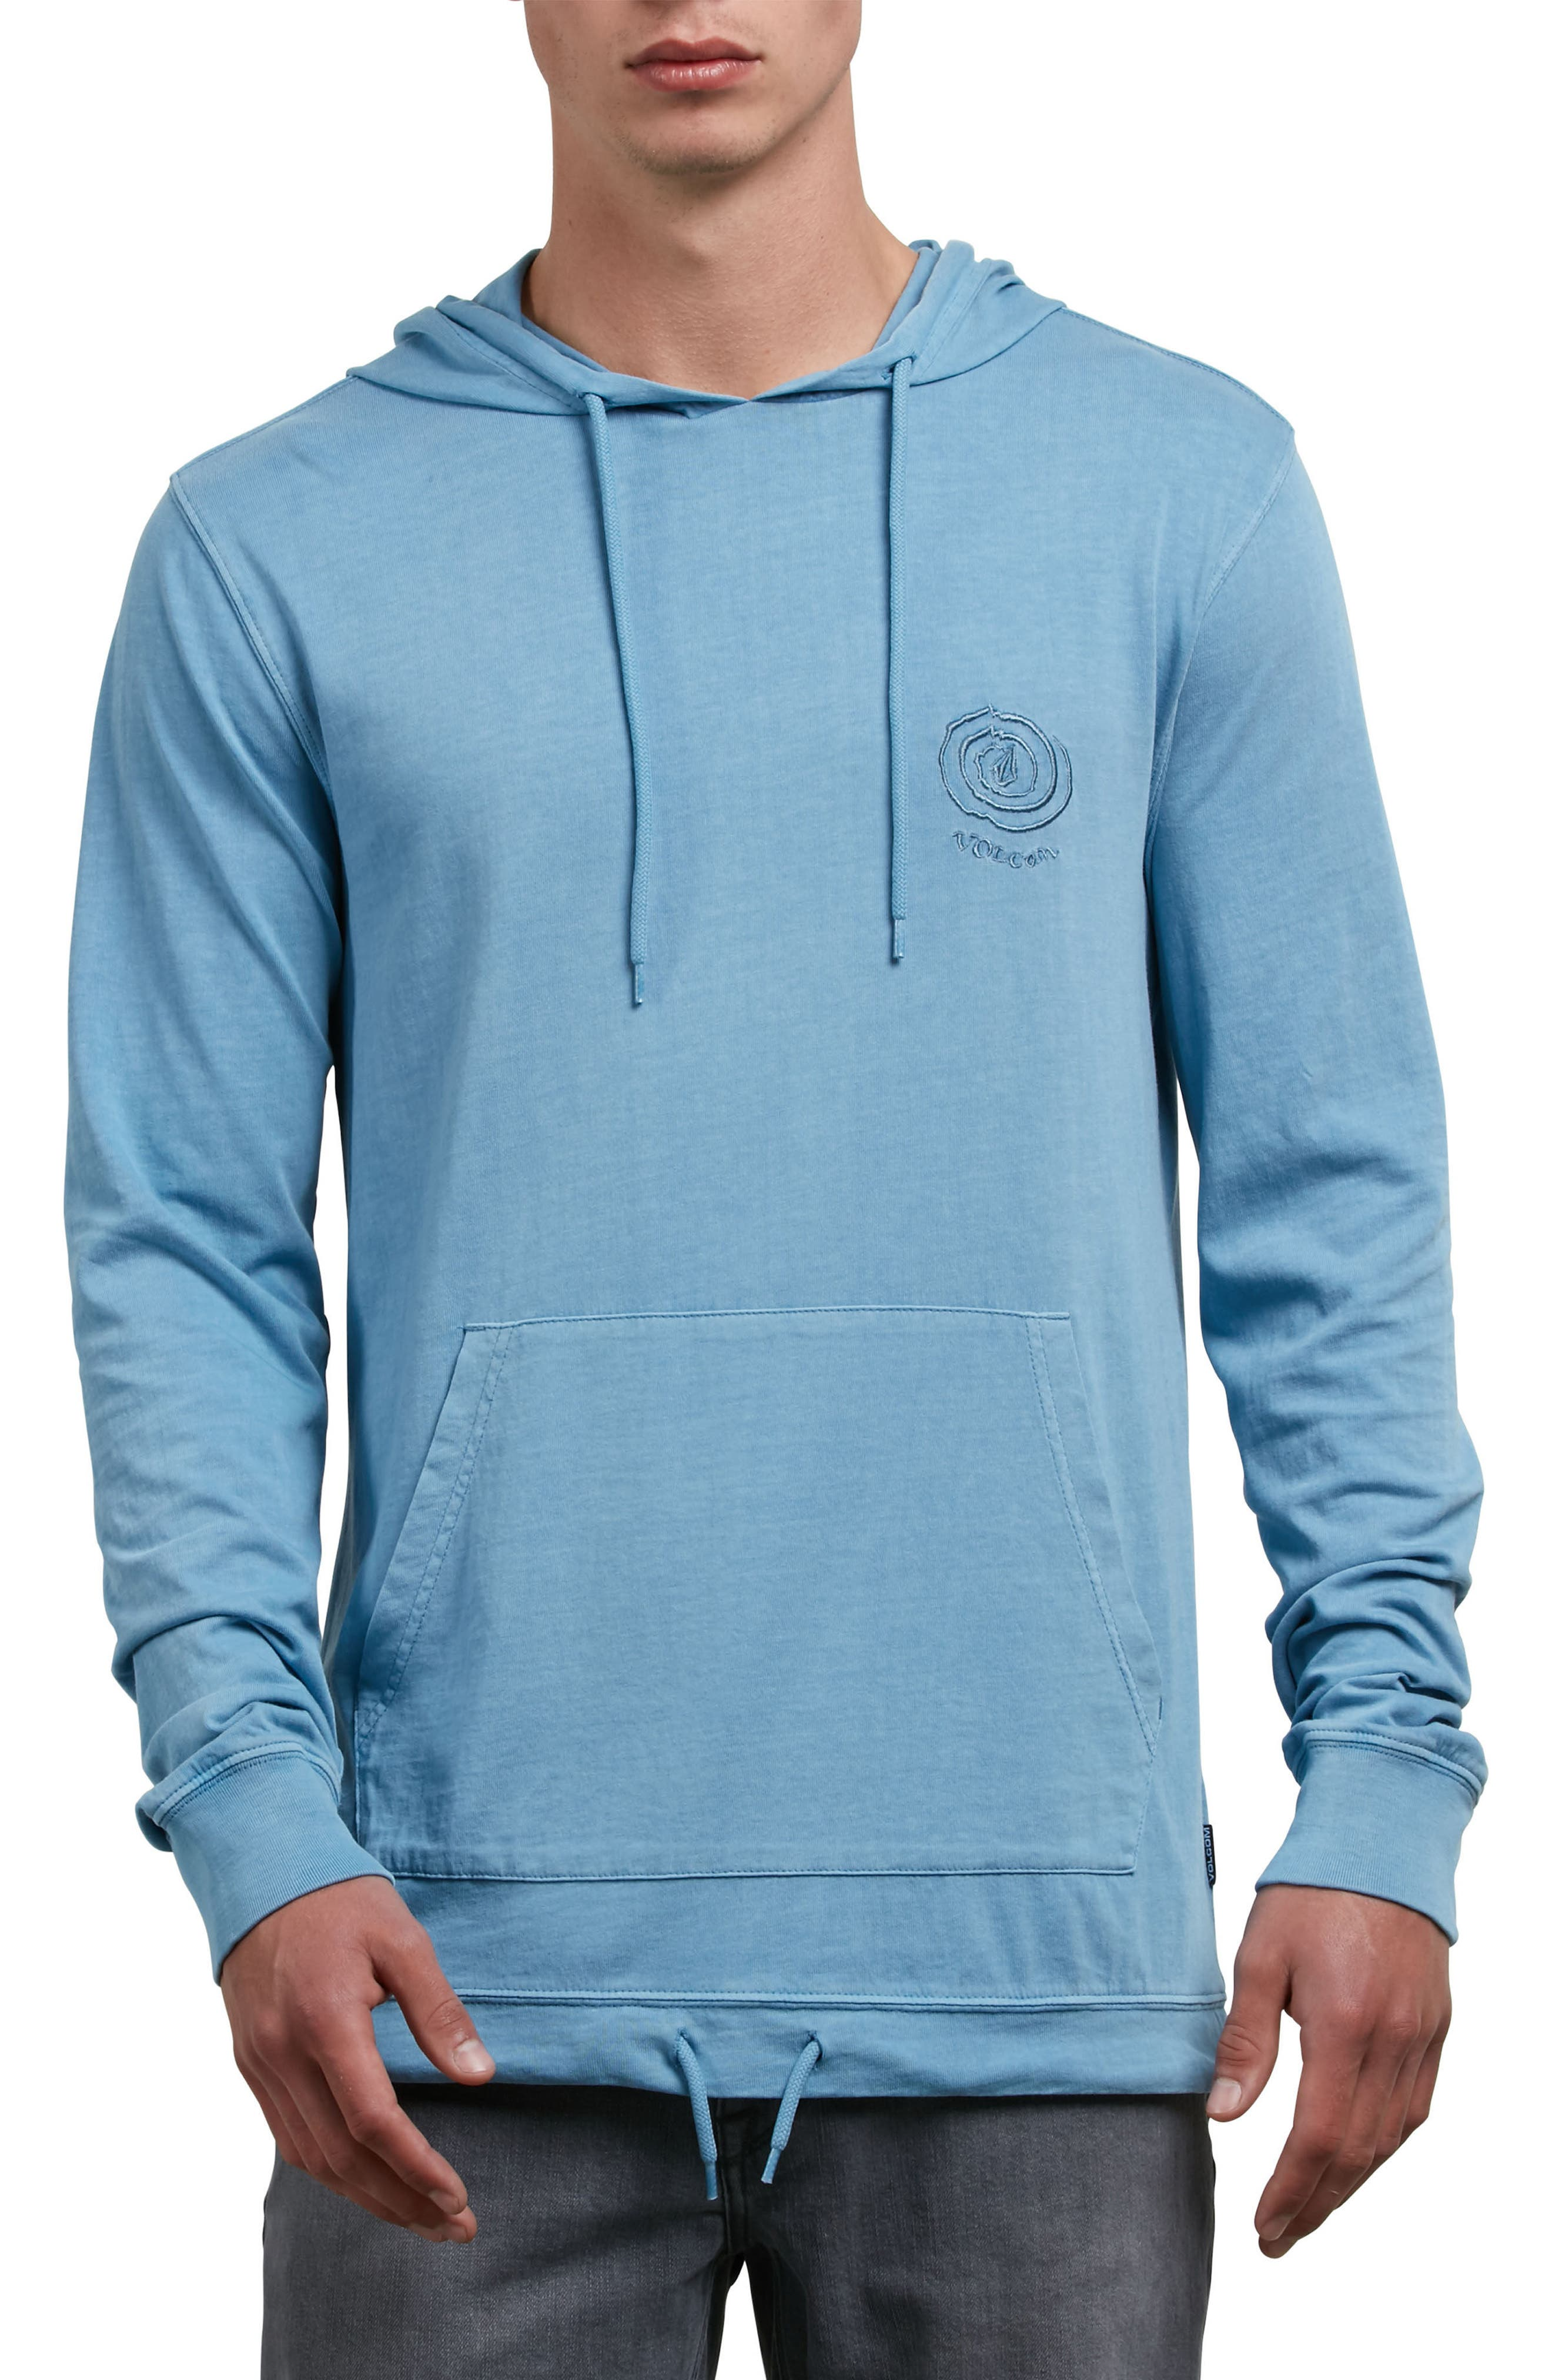 Freestate Hoodie,                         Main,                         color, Indigowork